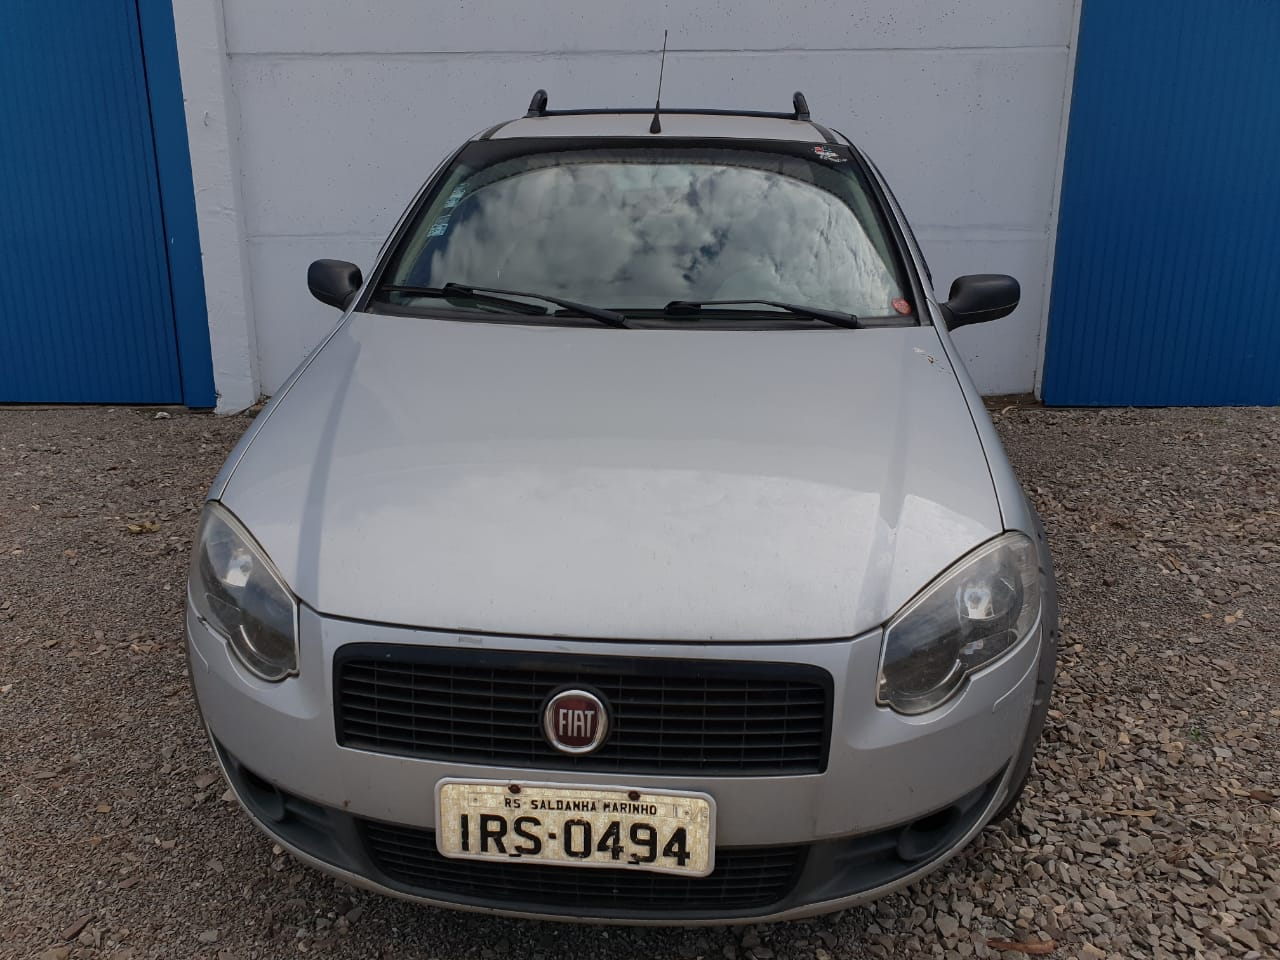 LOTE 2553